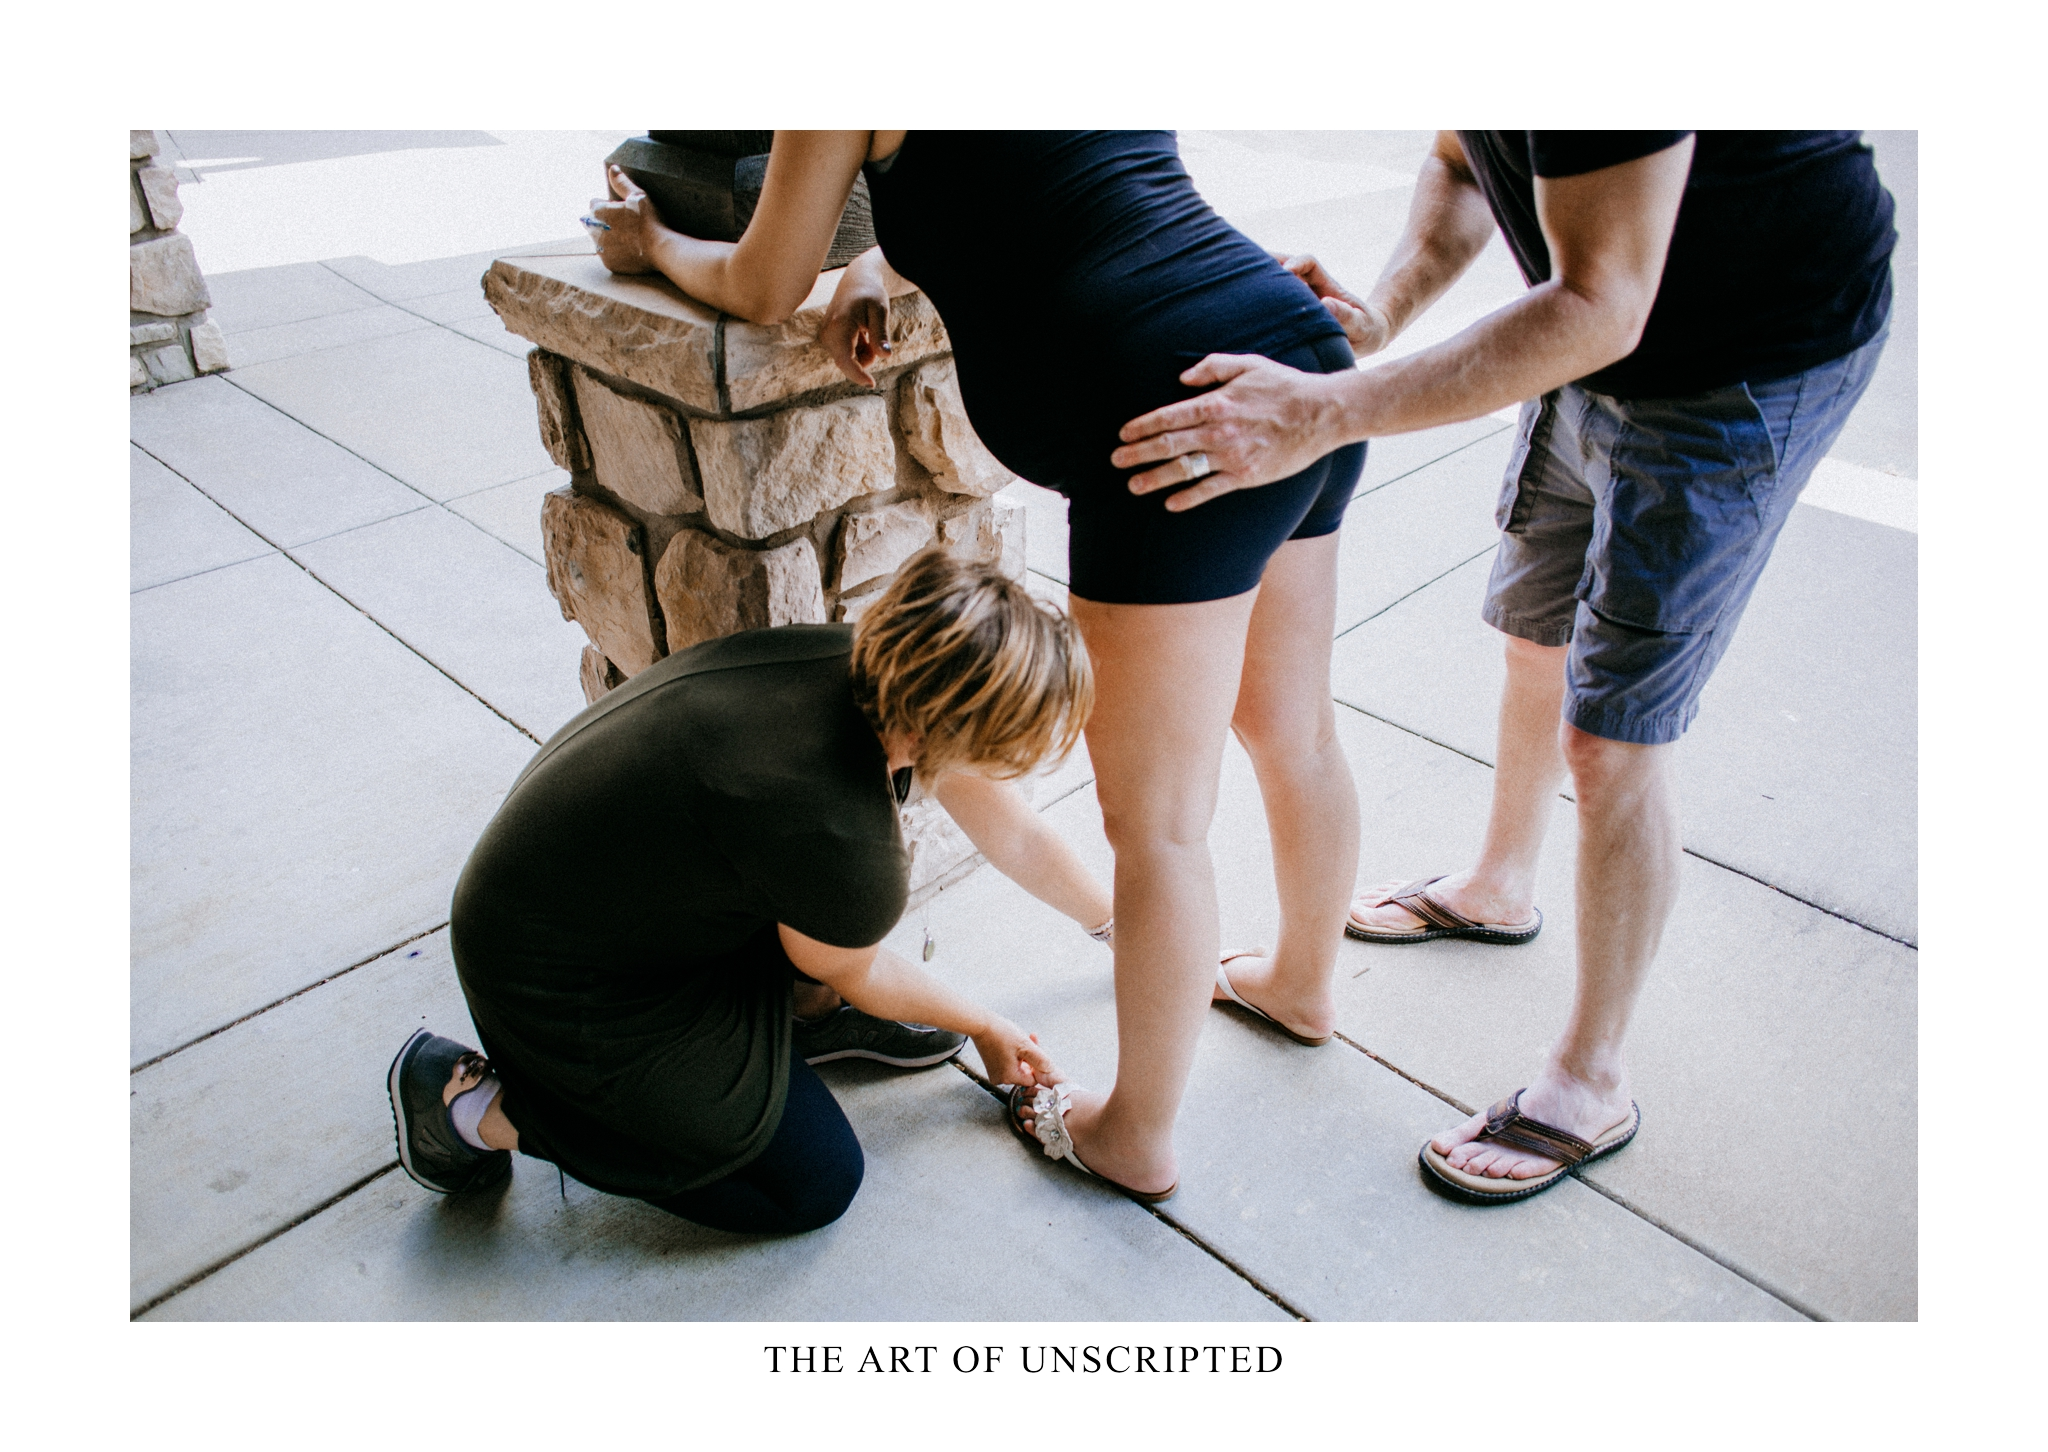 2017-06-10_155445__THE ART OF UNSCRIPTED_SPRINGFIELD MO_BIRTH PHOTOGRAPHER_ DOCUMENTARY_STORYTELLING_417_PHOTOGRAPHER